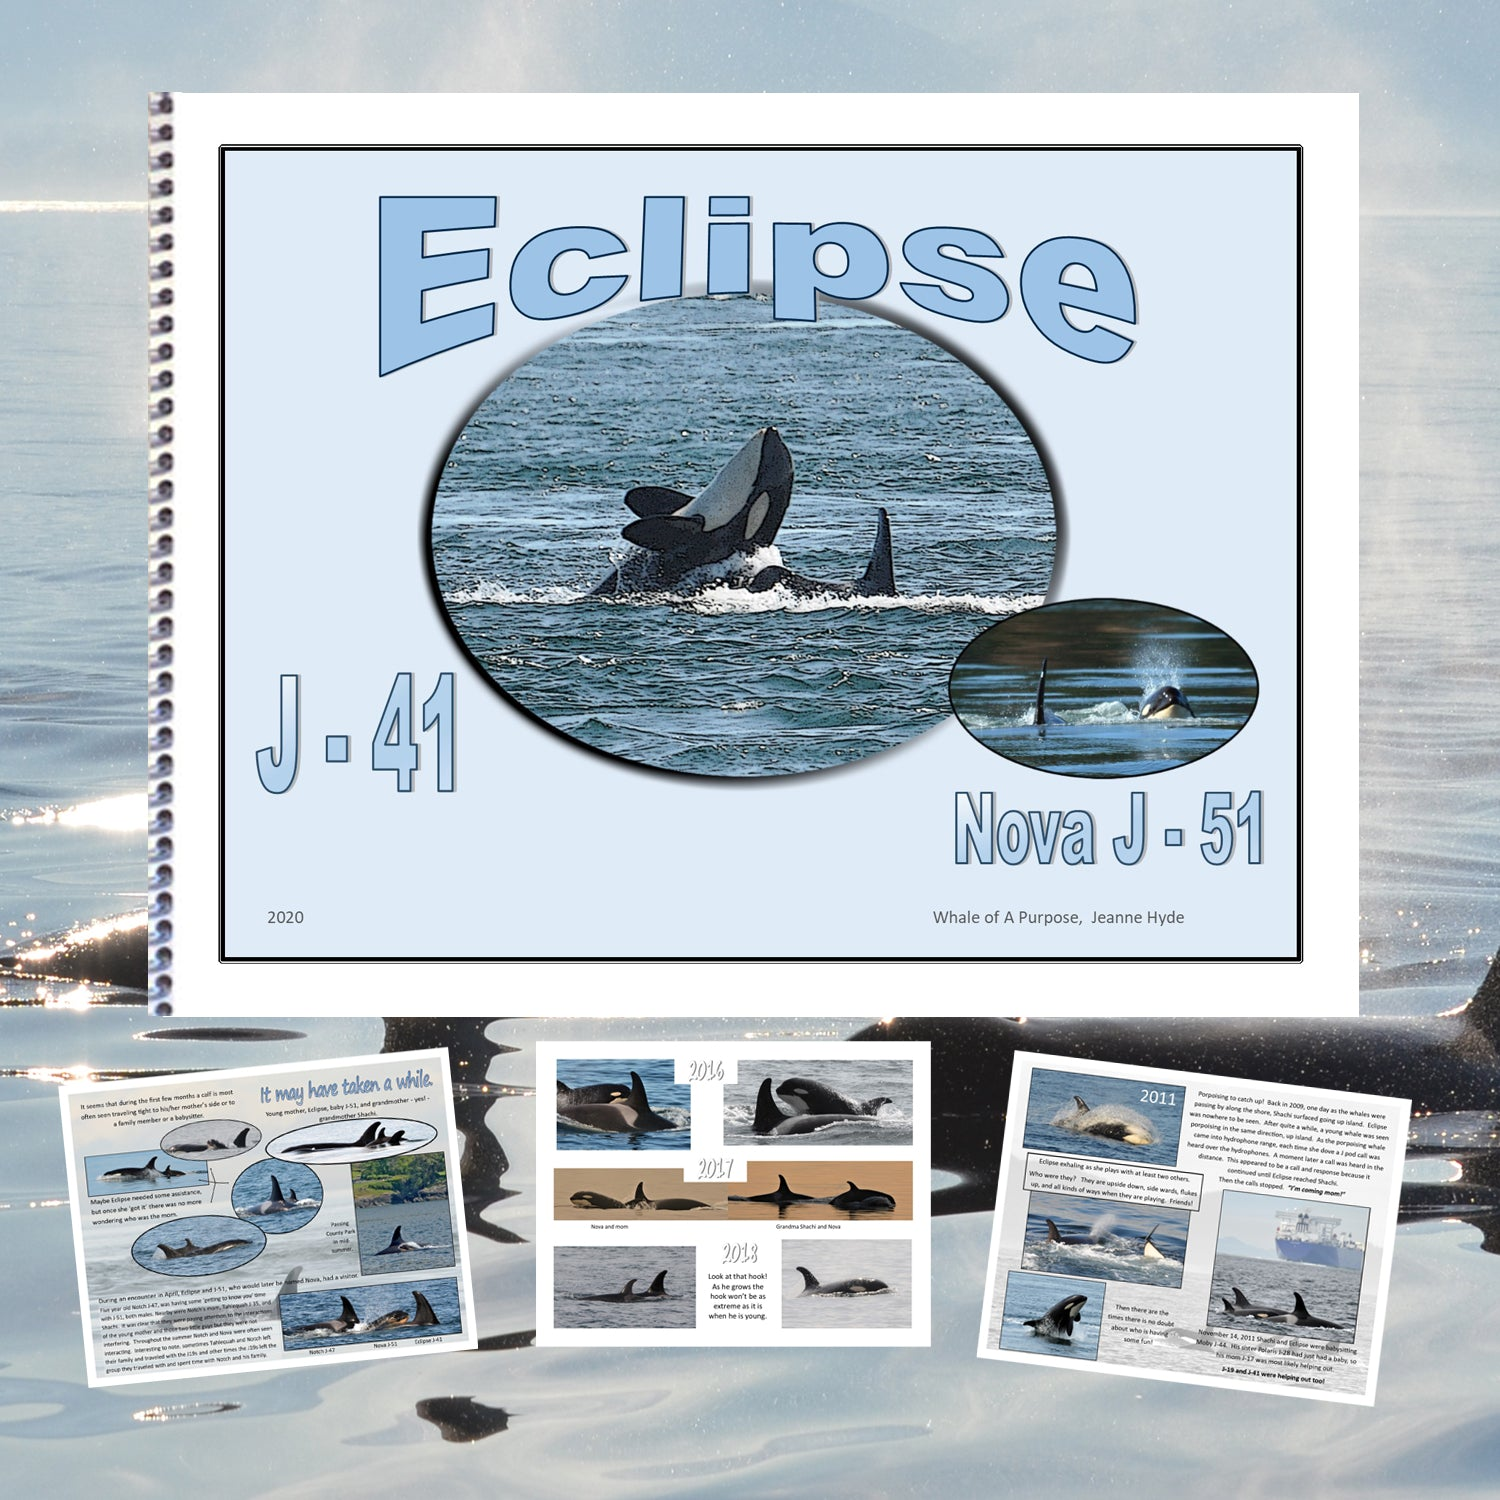 A Glimpse Into the life of Eclipse (J-41)